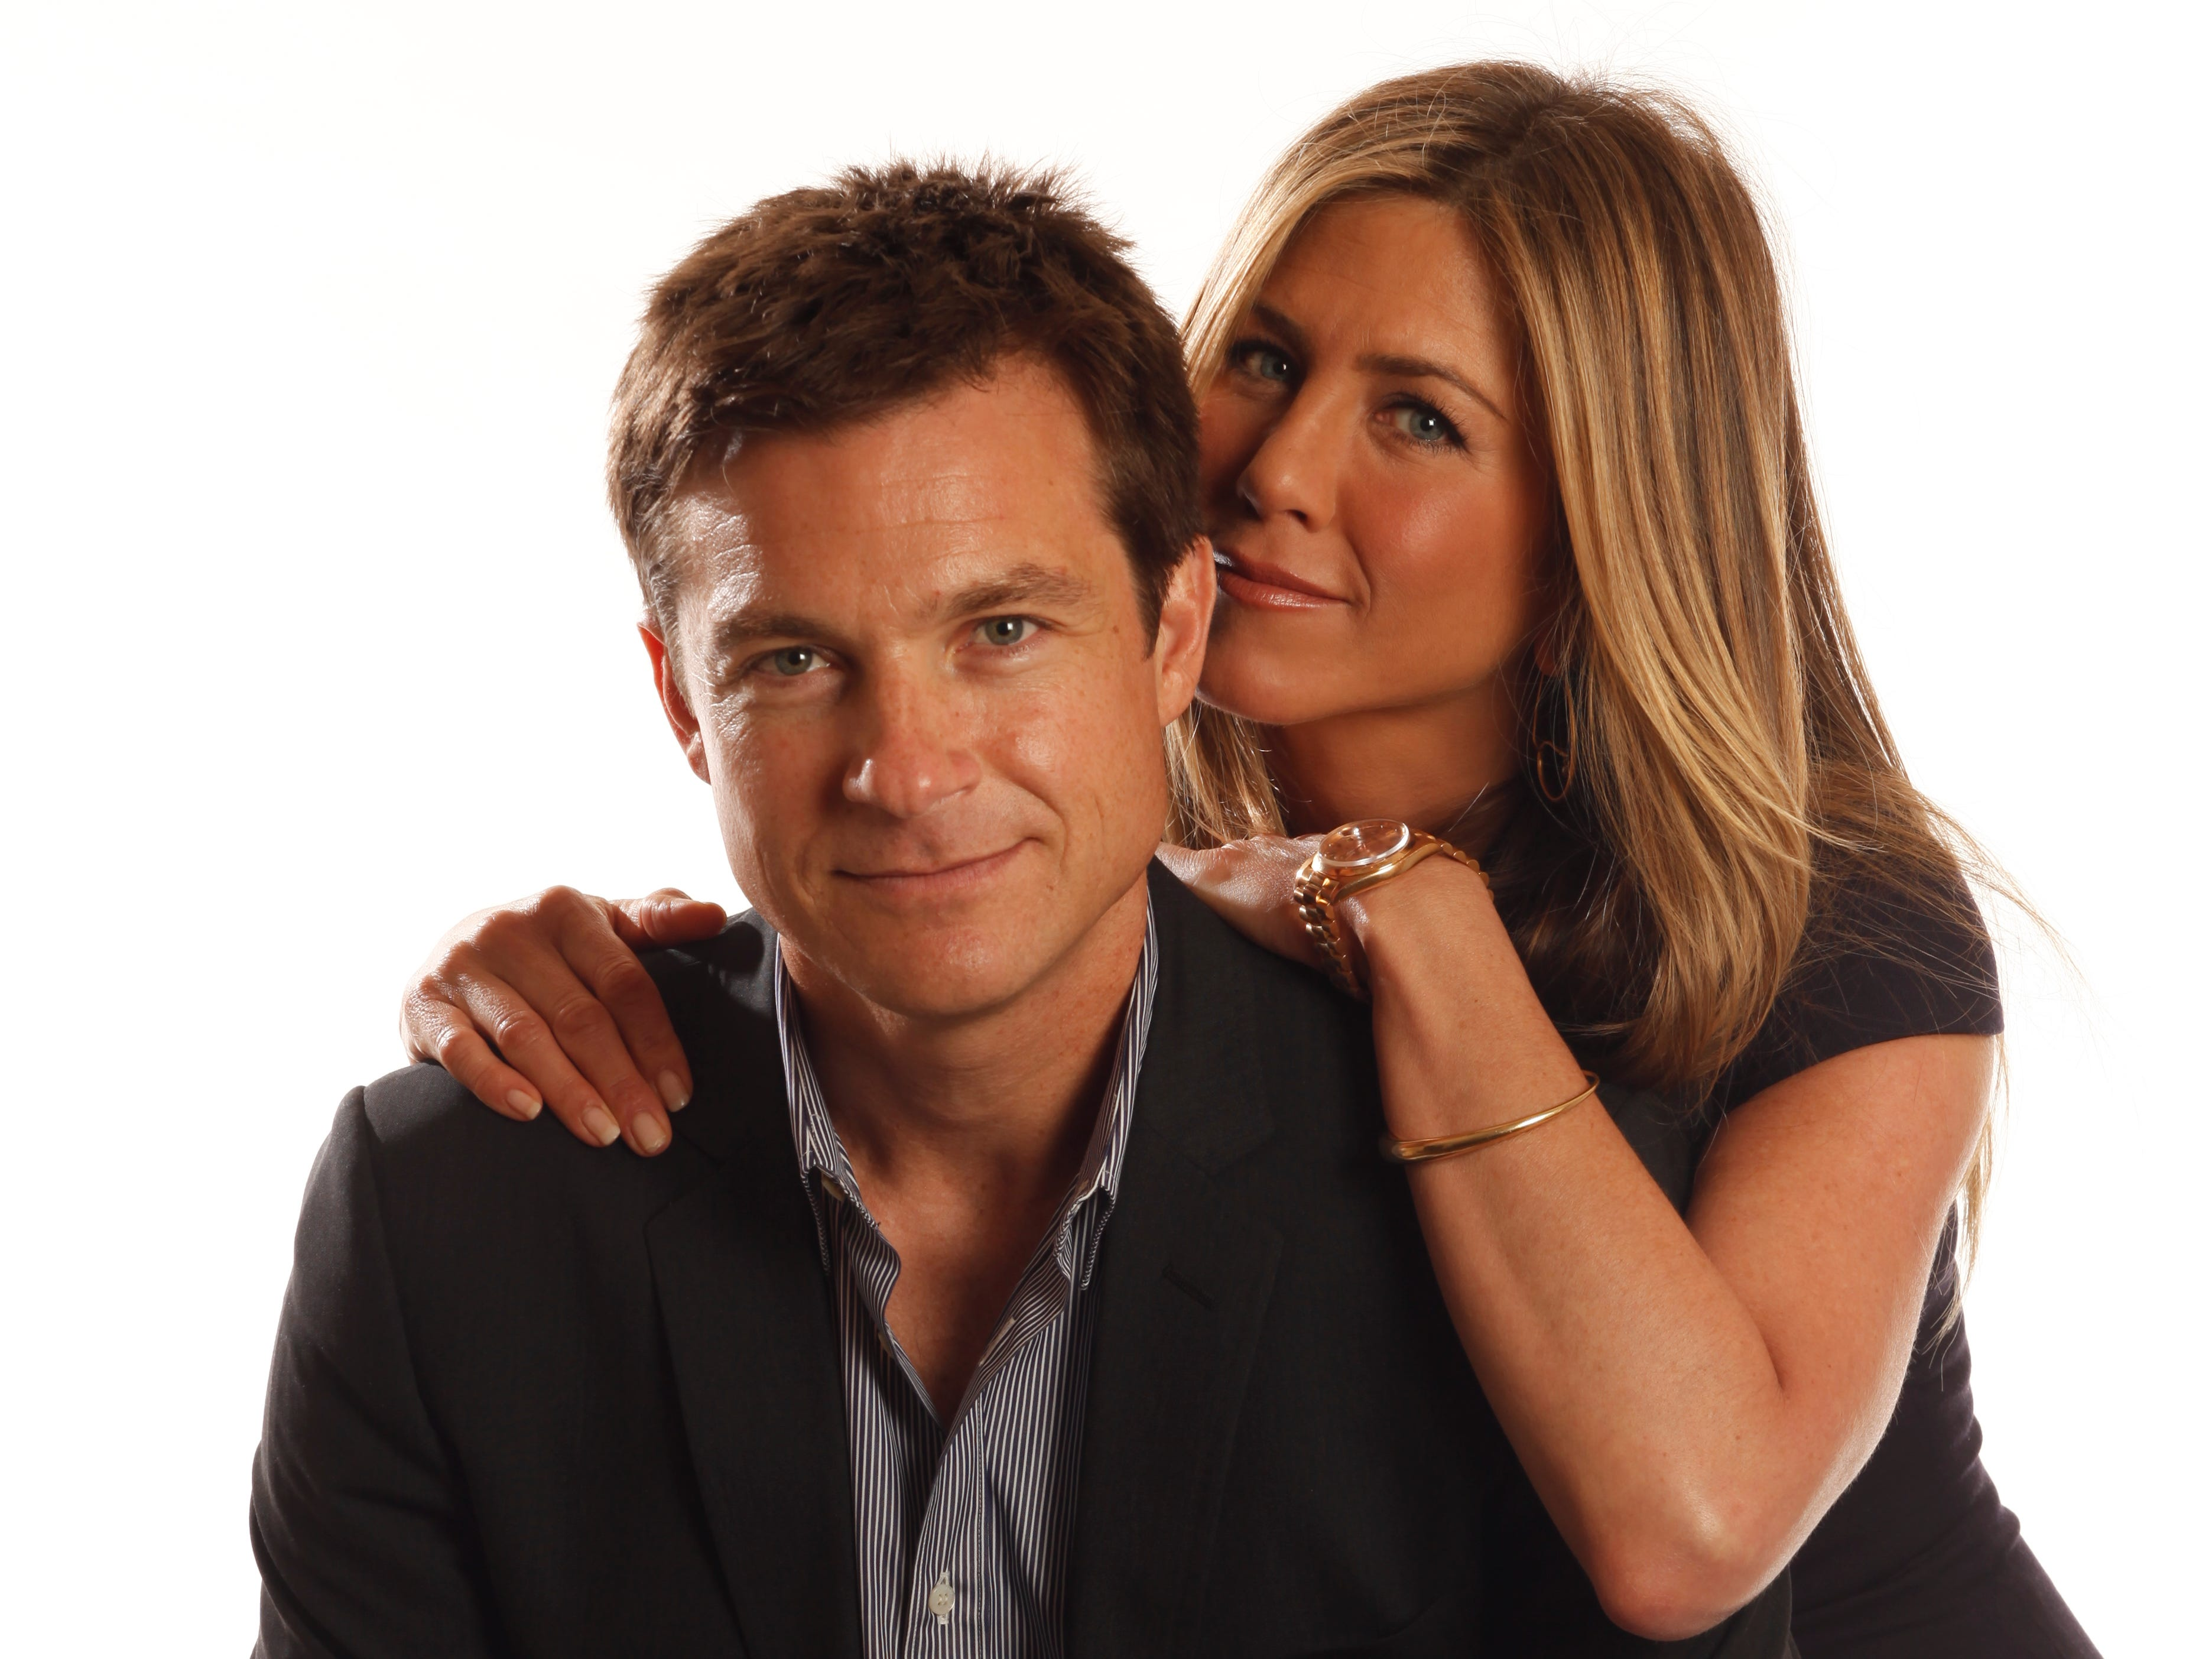 """In 2010, she re-teamed with another co-star from """"Horrible Bosses,"""" Jason Bateman, for """"The Switch."""" The movie's title refers to the plot's premise, in which Bateman 's character swaps his semen for that of the sperm donor Aniston's was using to conceive a child."""